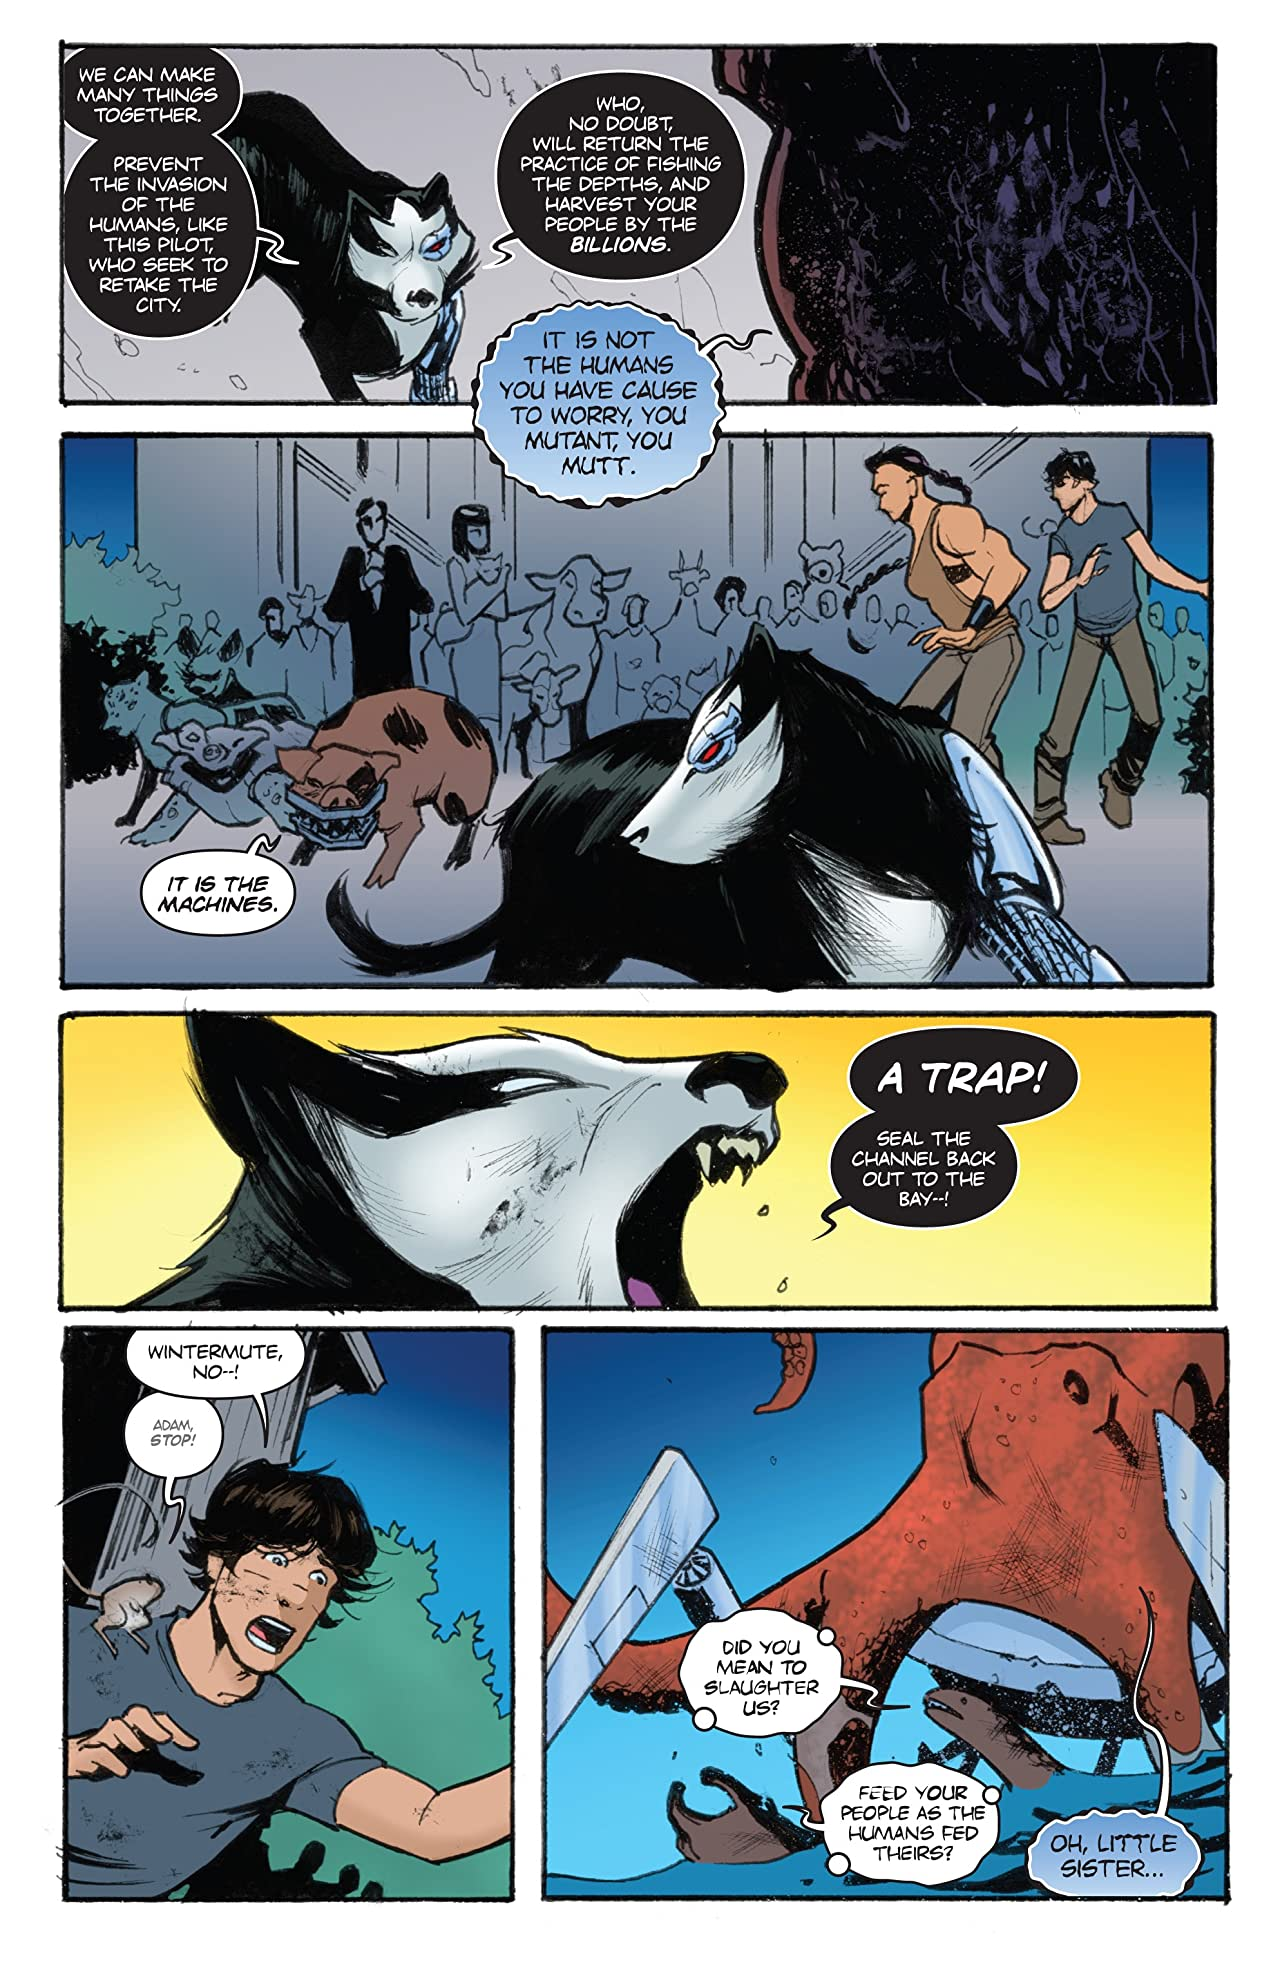 Animosity: Evolution #9